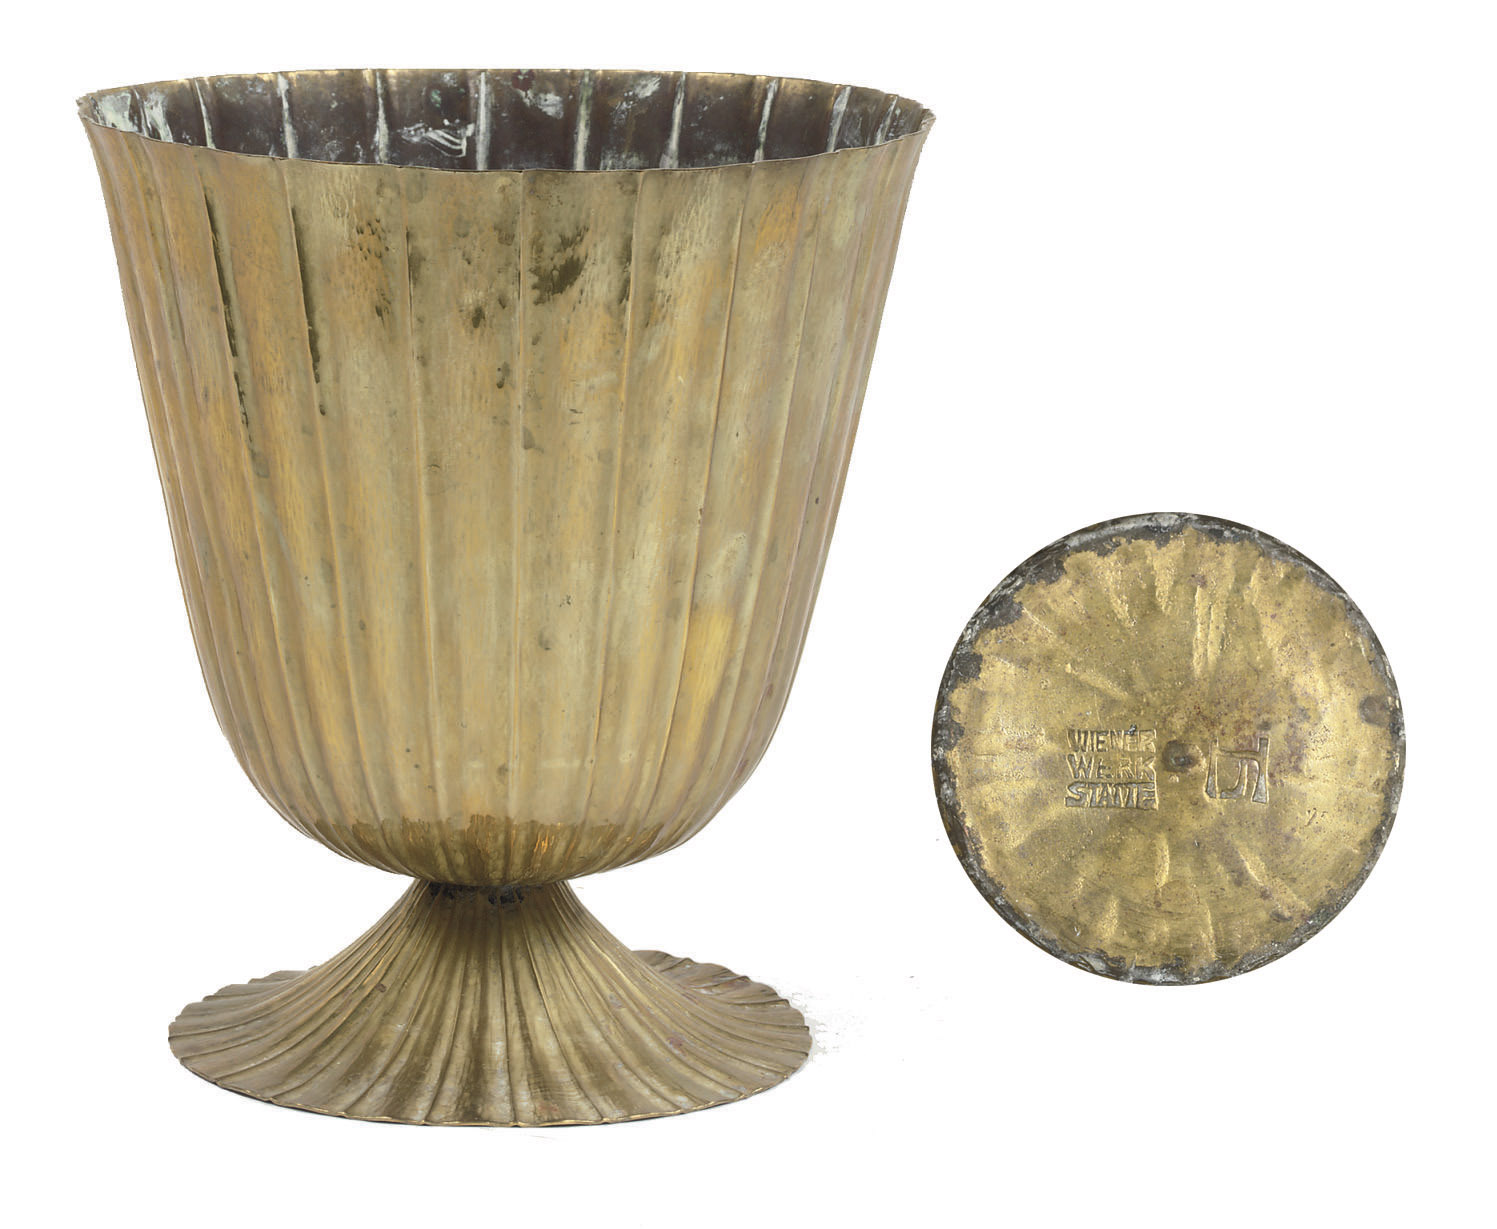 A HAMMERED BRASS VASE